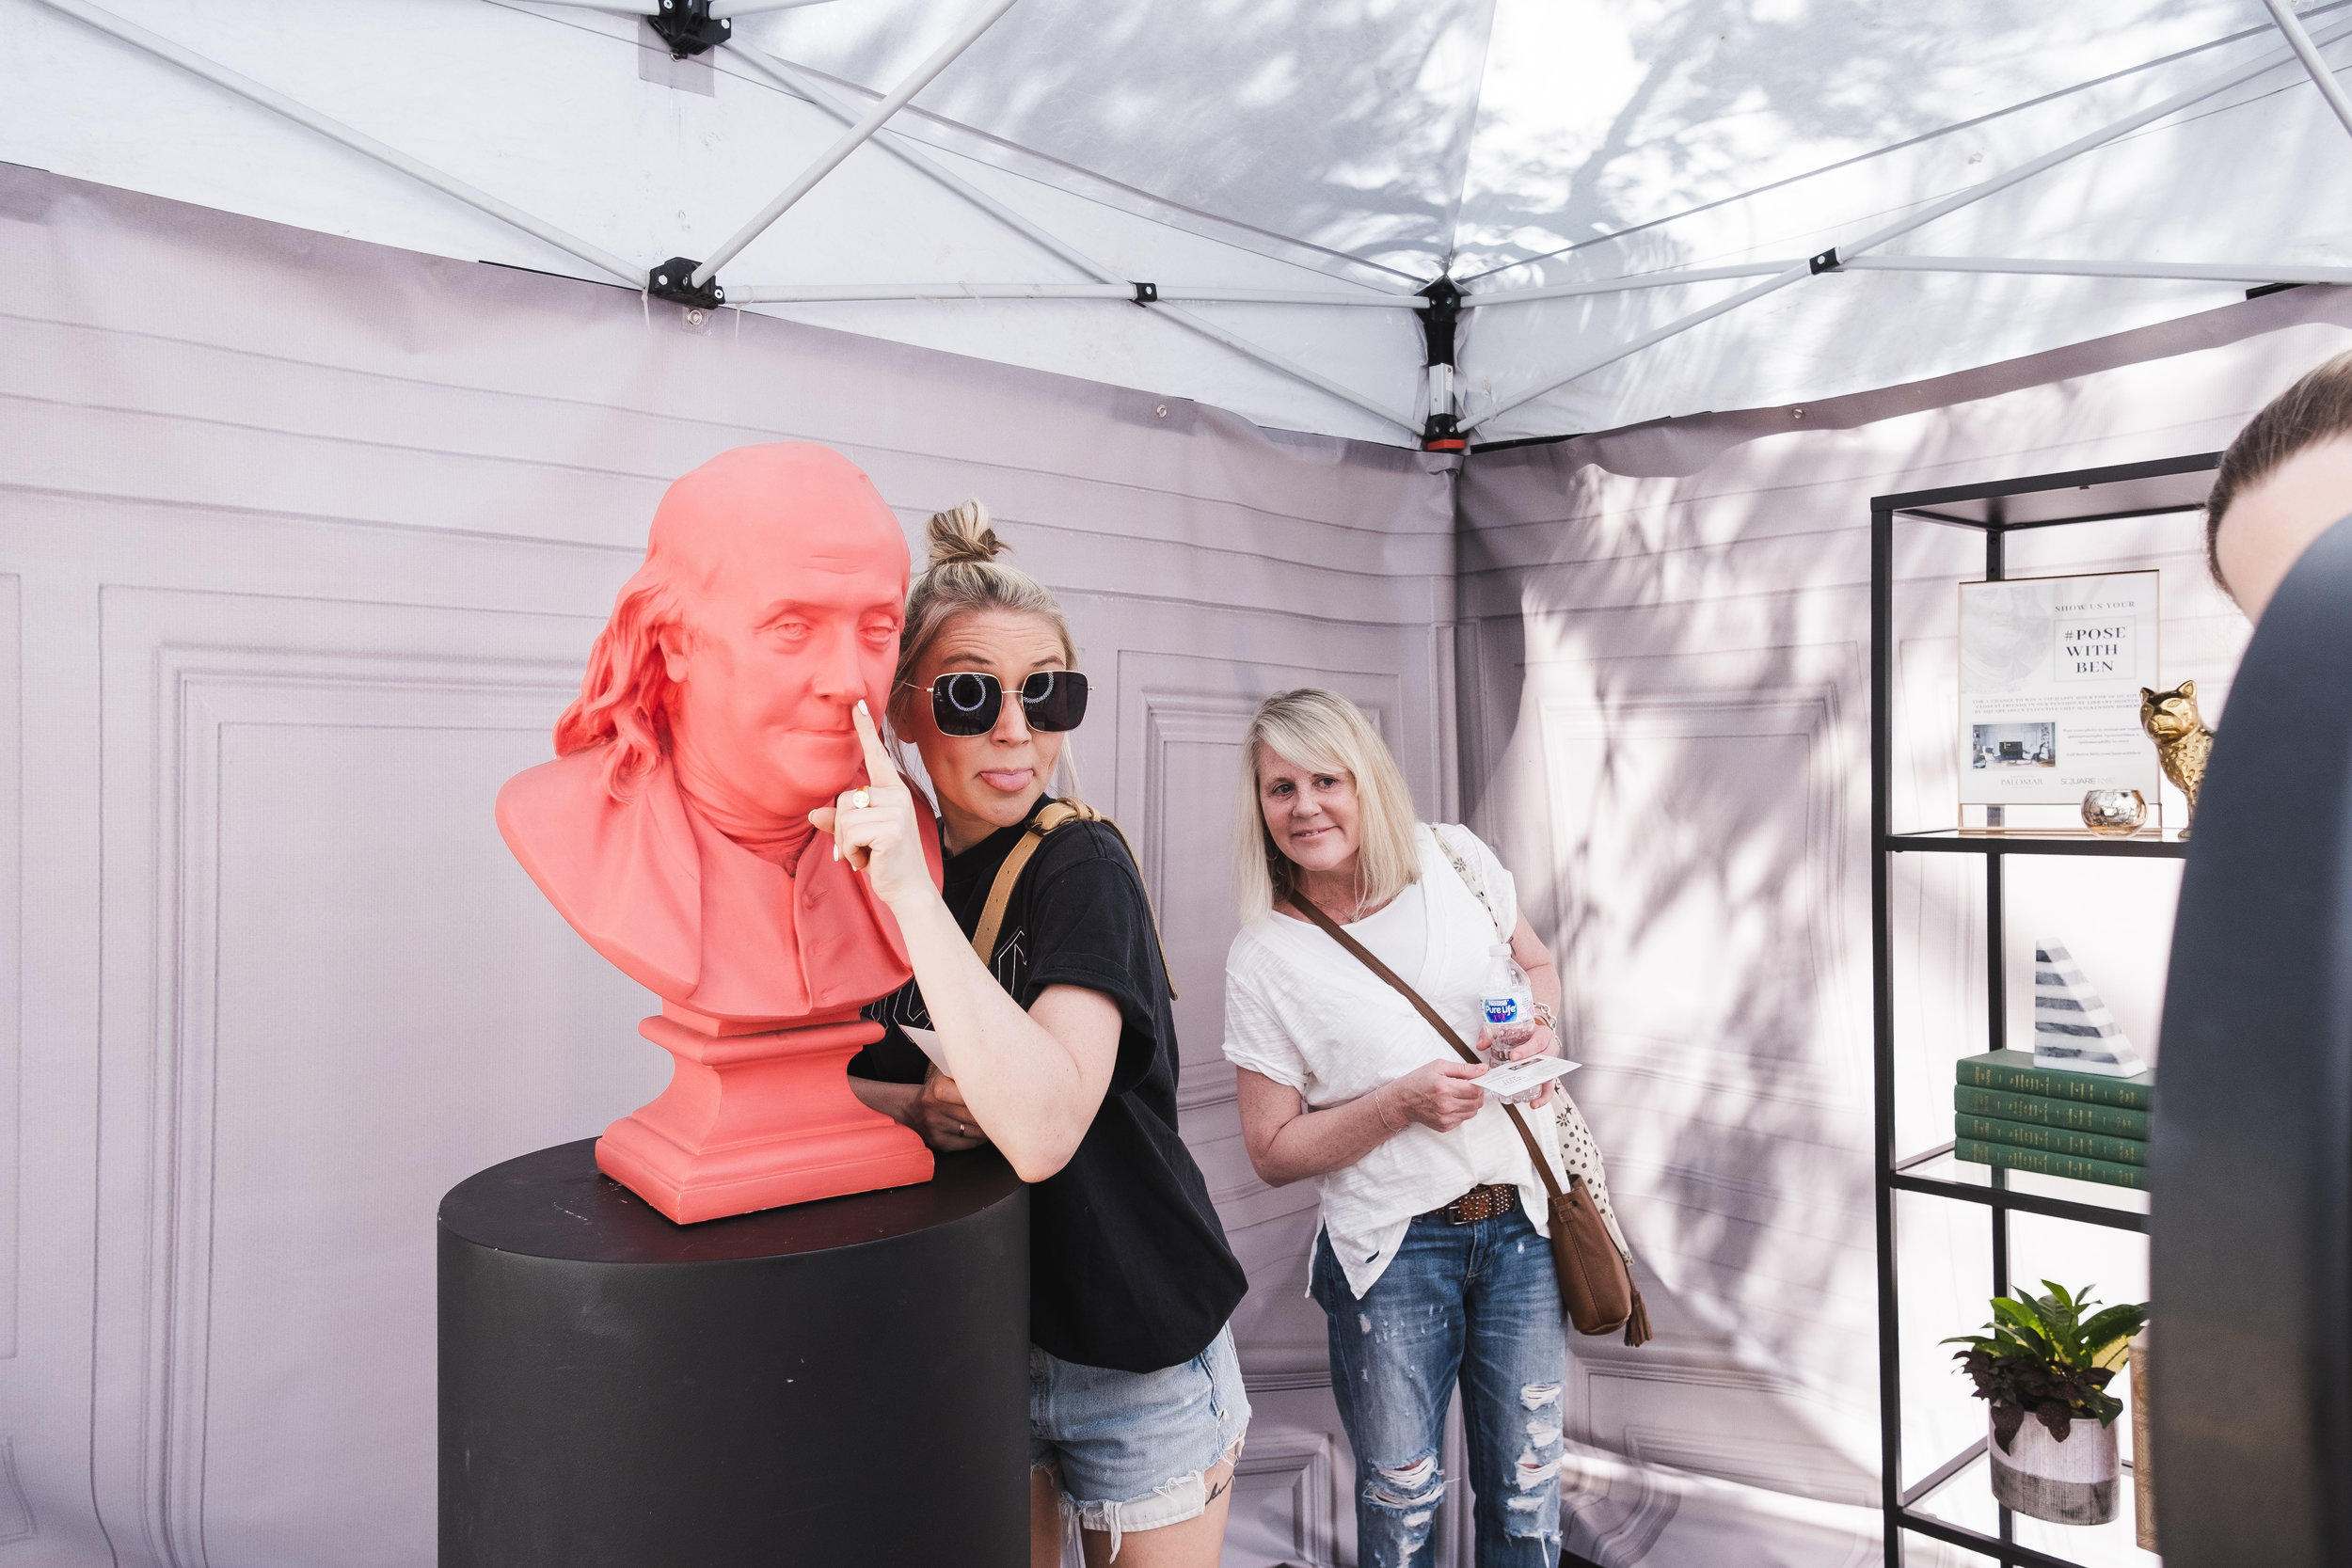 2019_RITTENHOUSE ROW FEST_EVENTS_THE PHILLY CHECKLIST-8.jpg